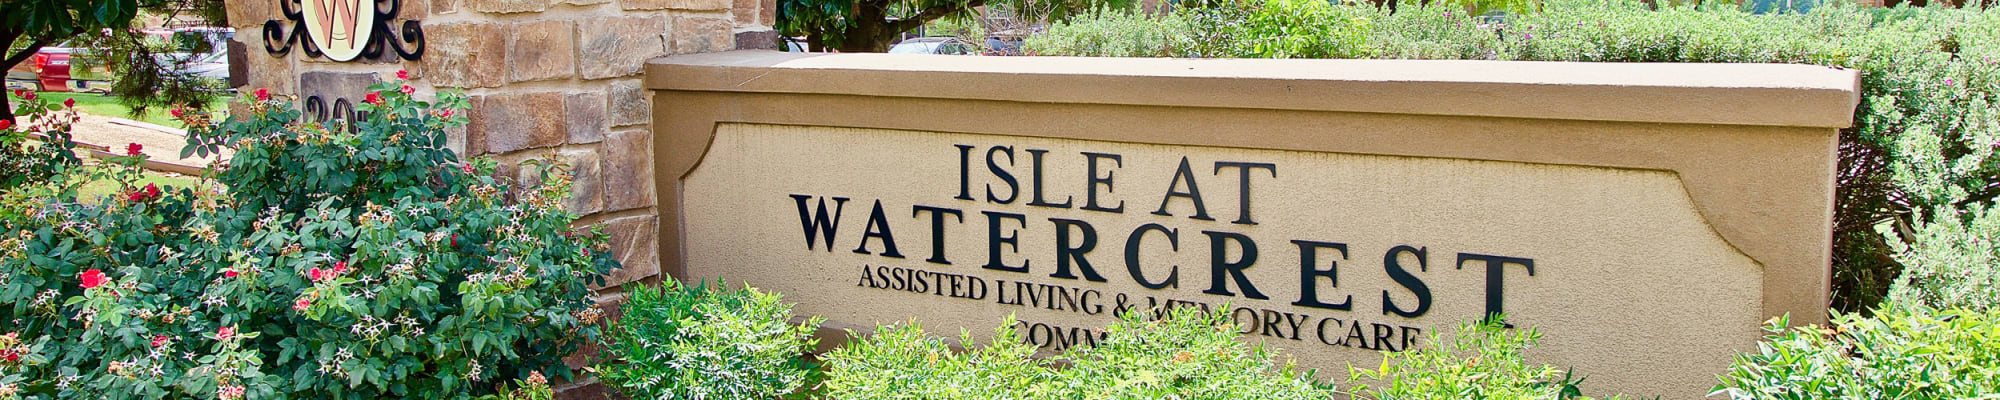 Planning & resources offered by Isle at Watercrest Mansfield in Mansfield, Texas